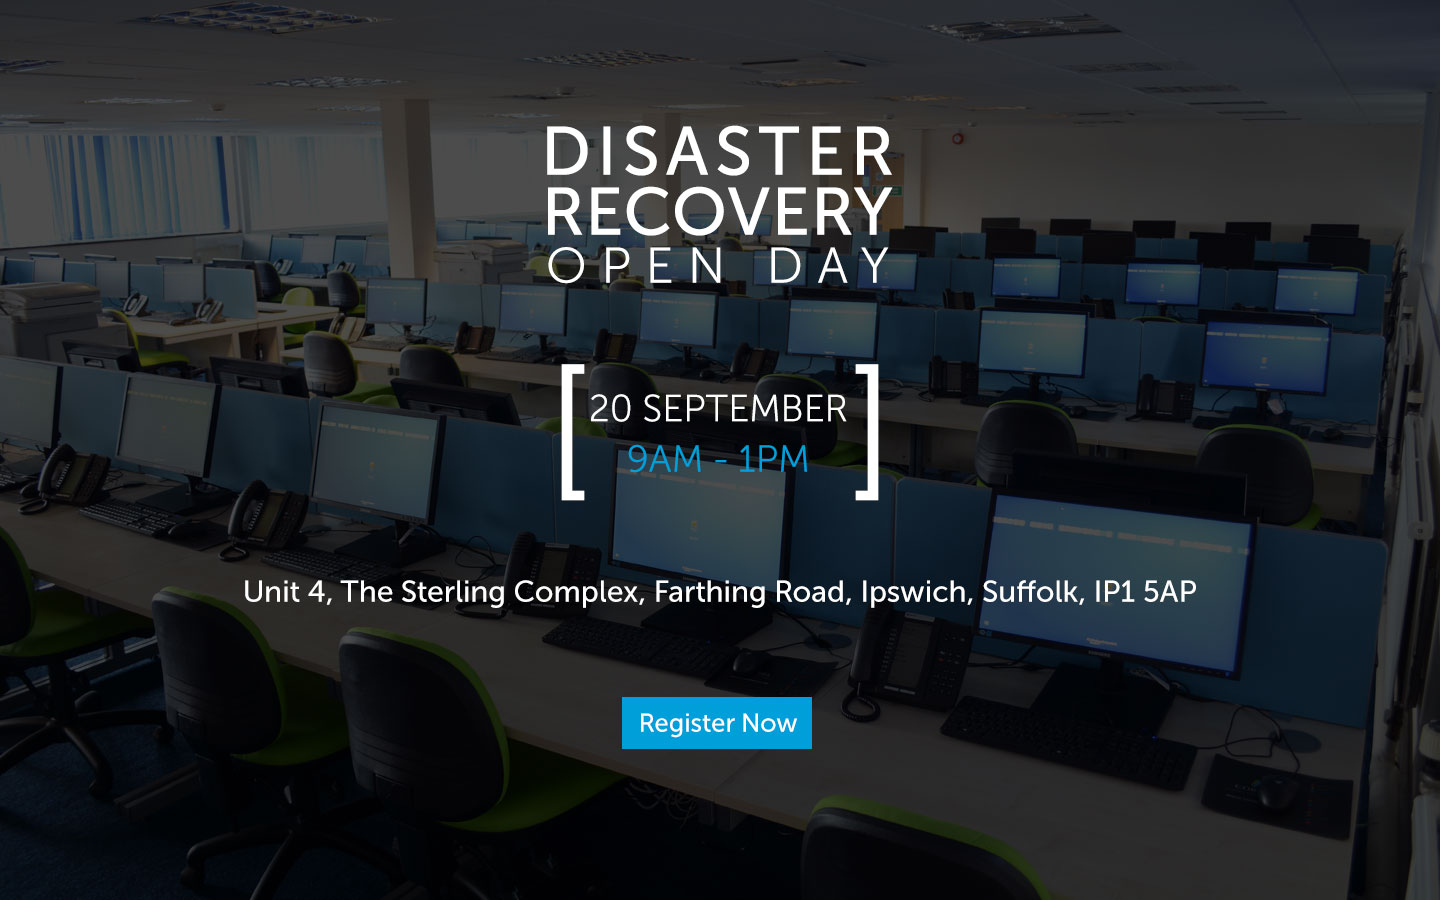 Disaster Recovery Open Day, 20 September 2017